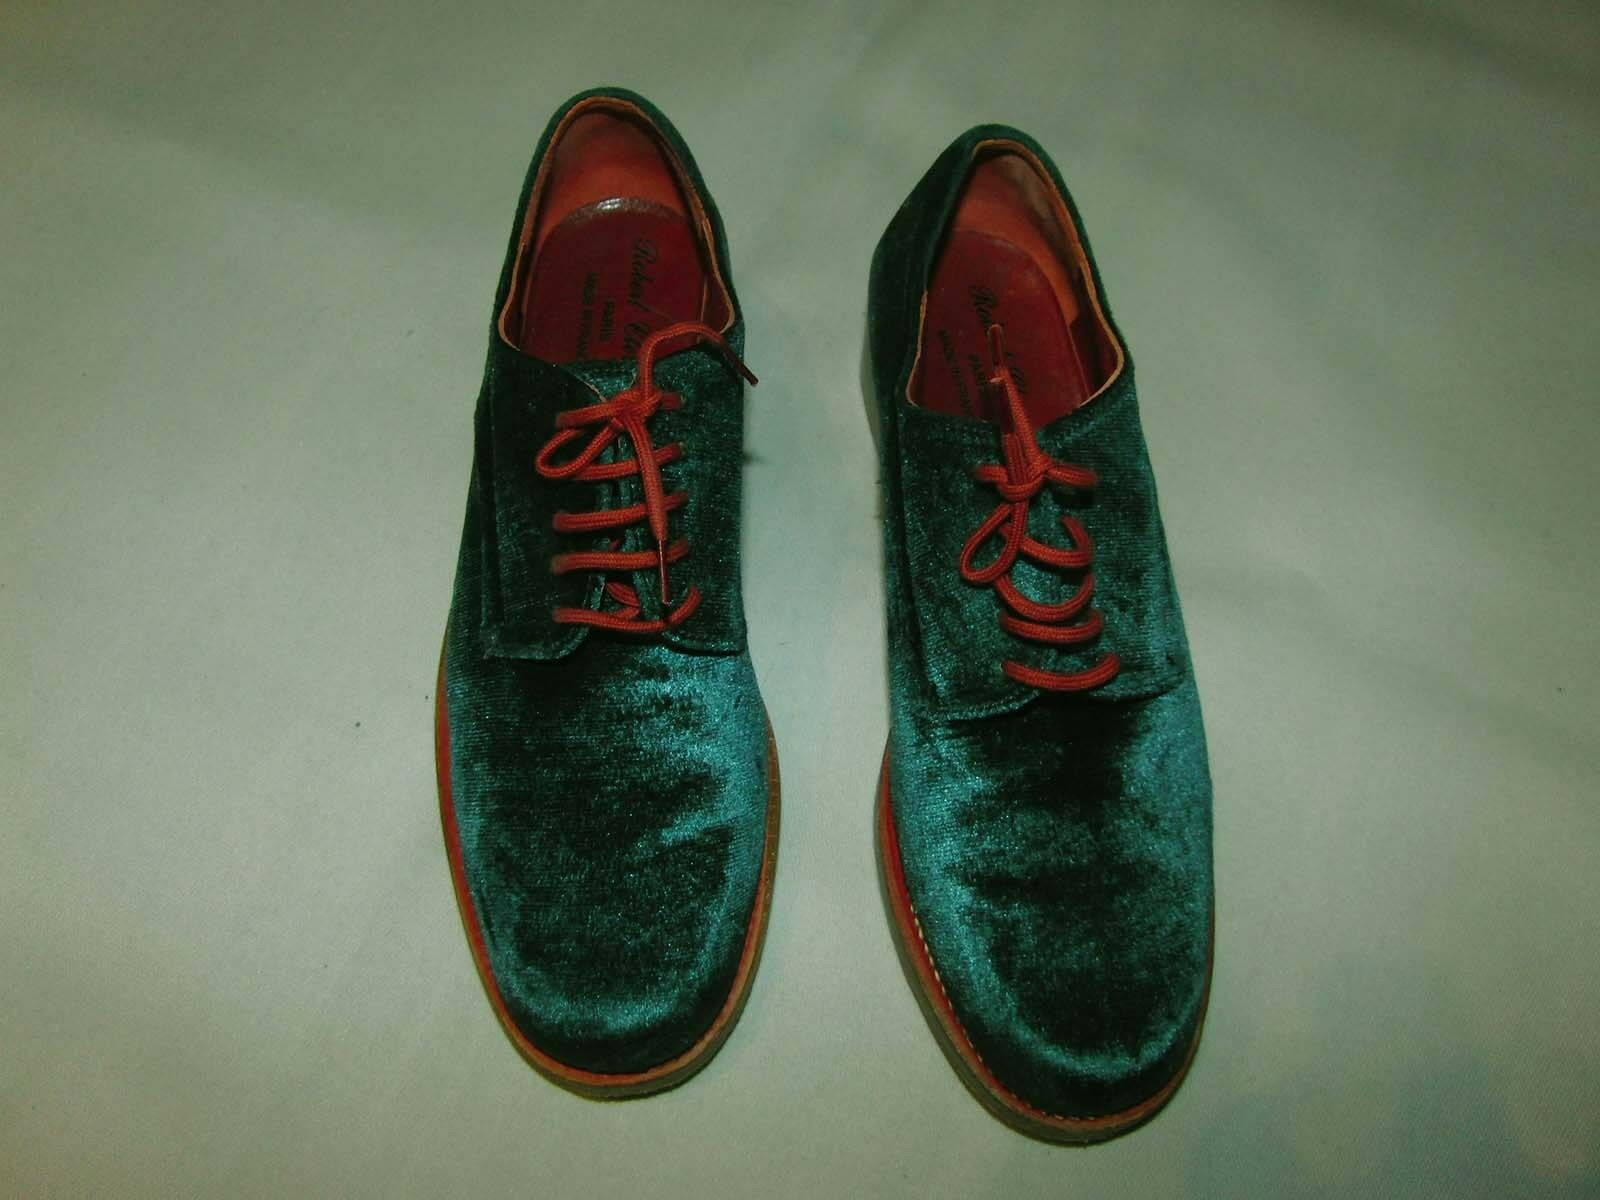 ROBERT CLERGERIE chaussures US taille 5,5 taille 37 vert-turquoise TOP